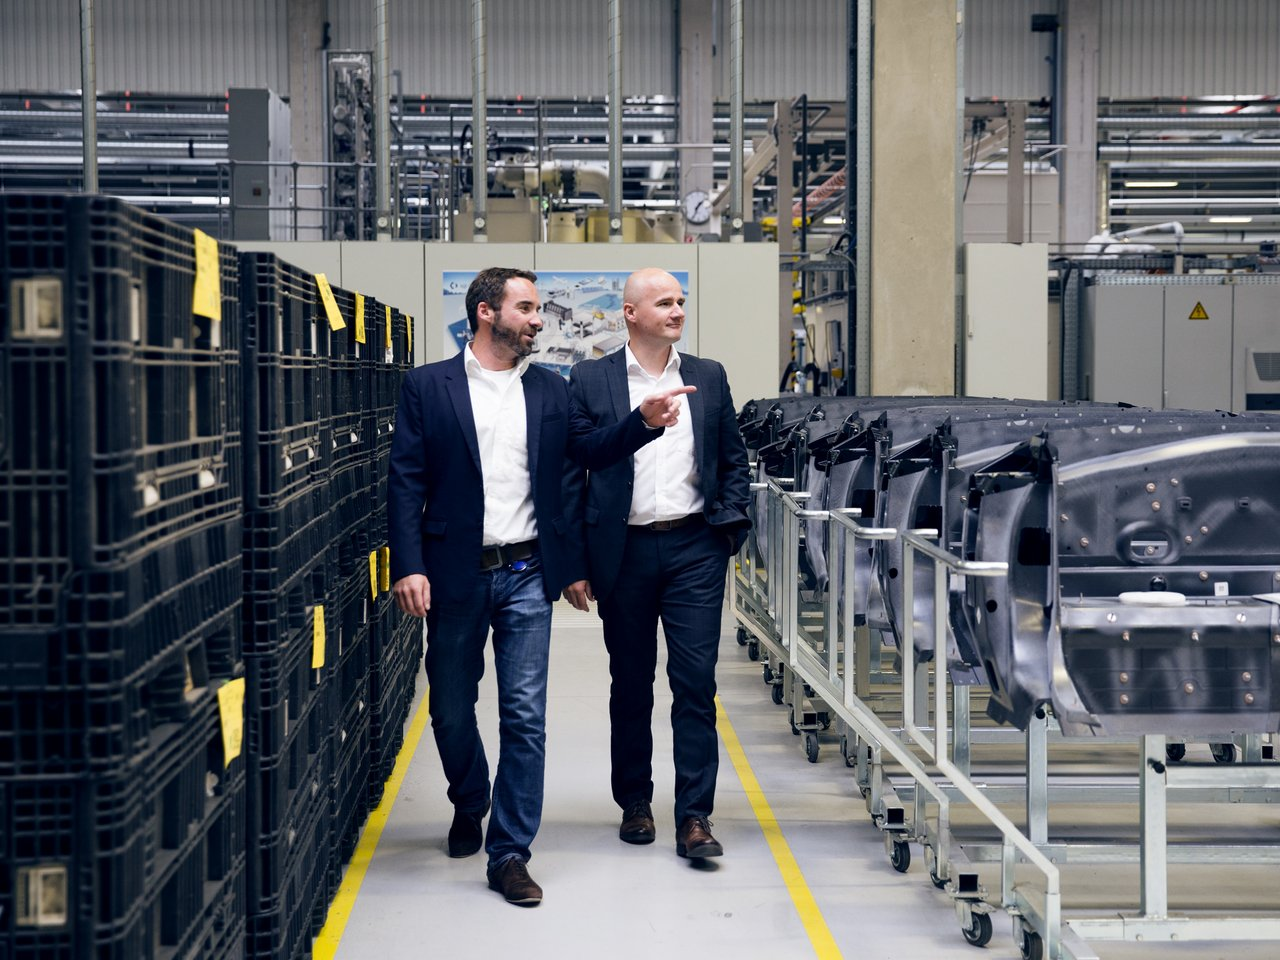 Herwig Fischer (l) and Robert Hütter (r) during a tour through the production facilities in Ort and Ried im Innkreis.